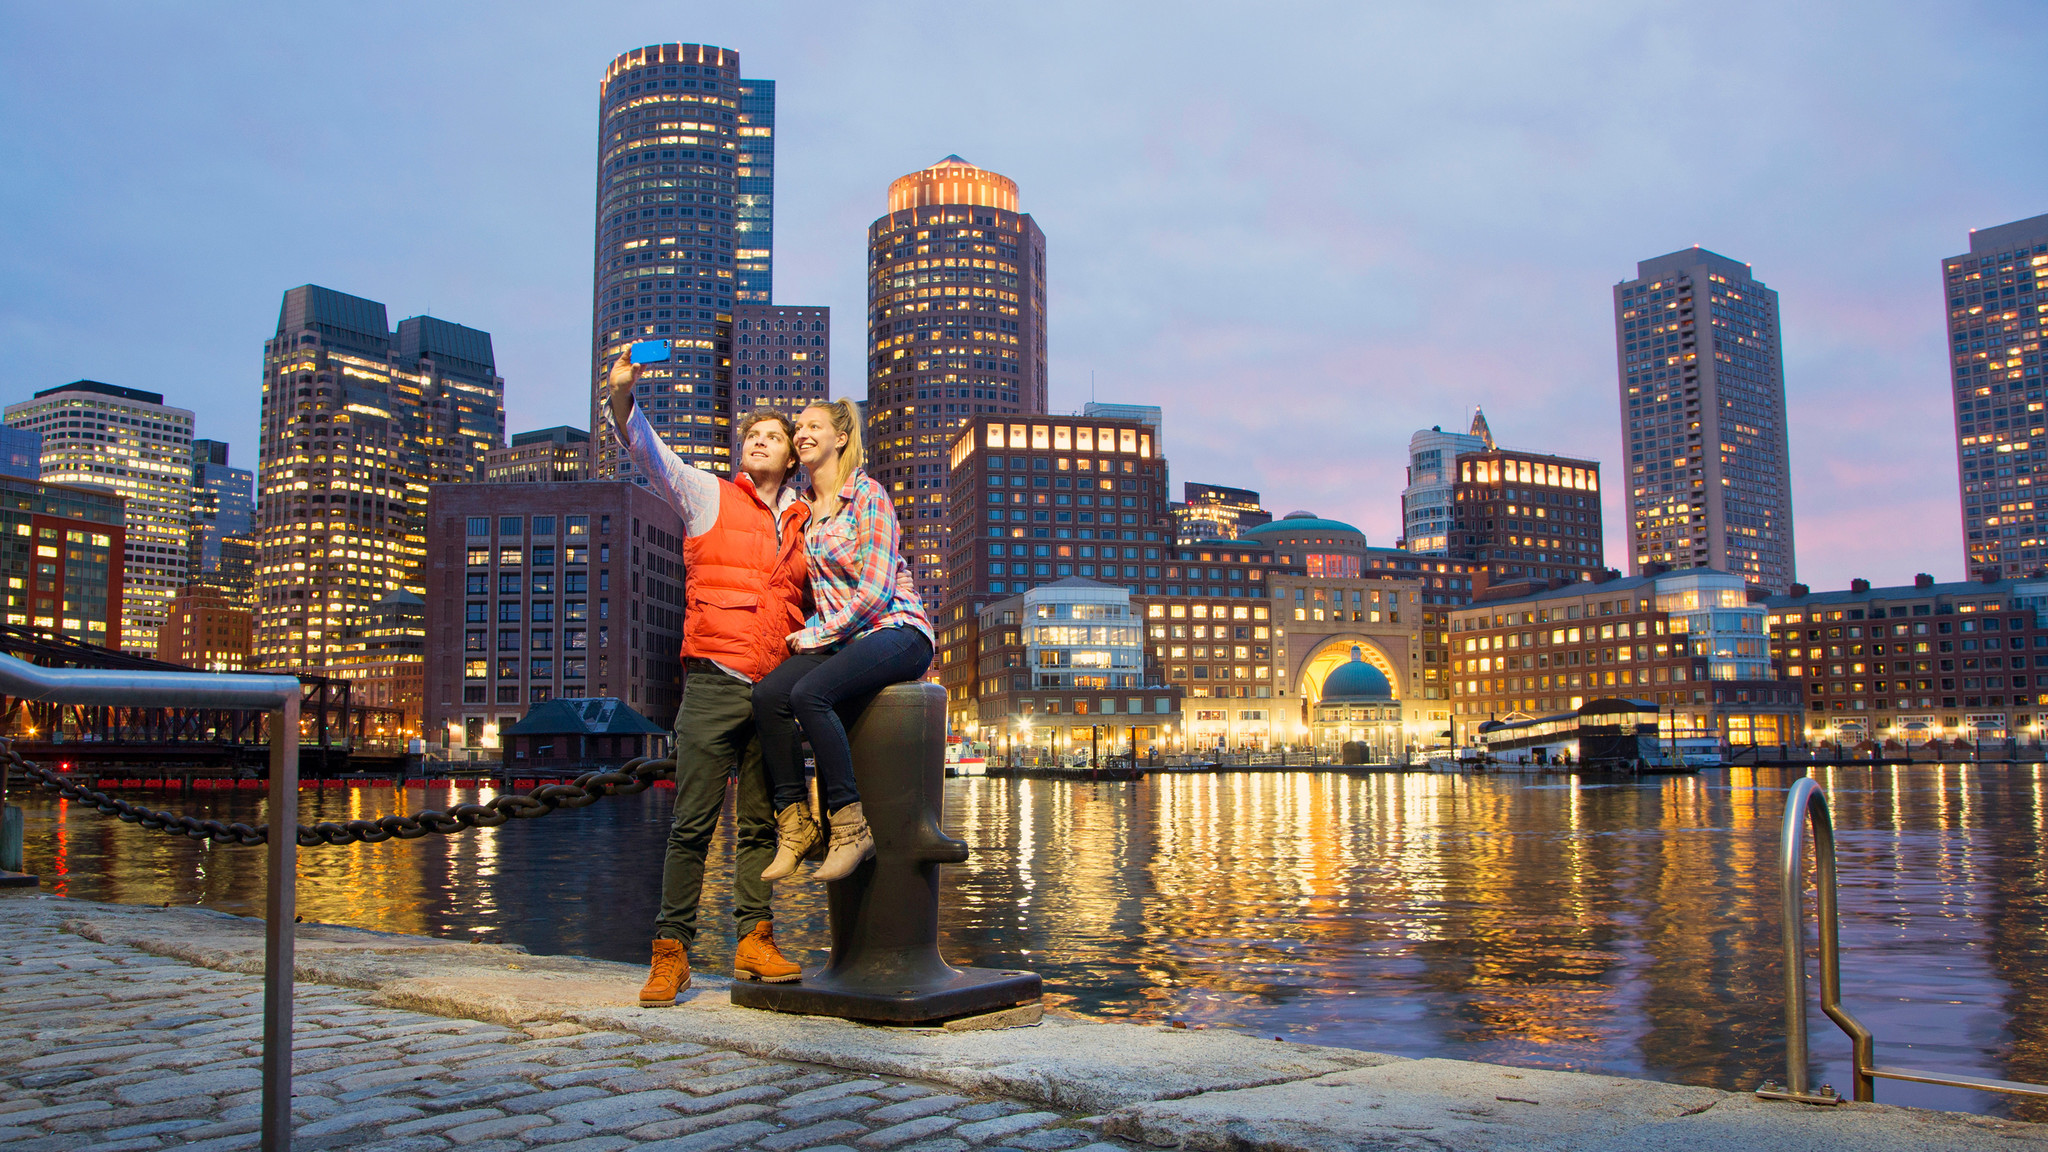 Snap a selfie with the Boston skyline.